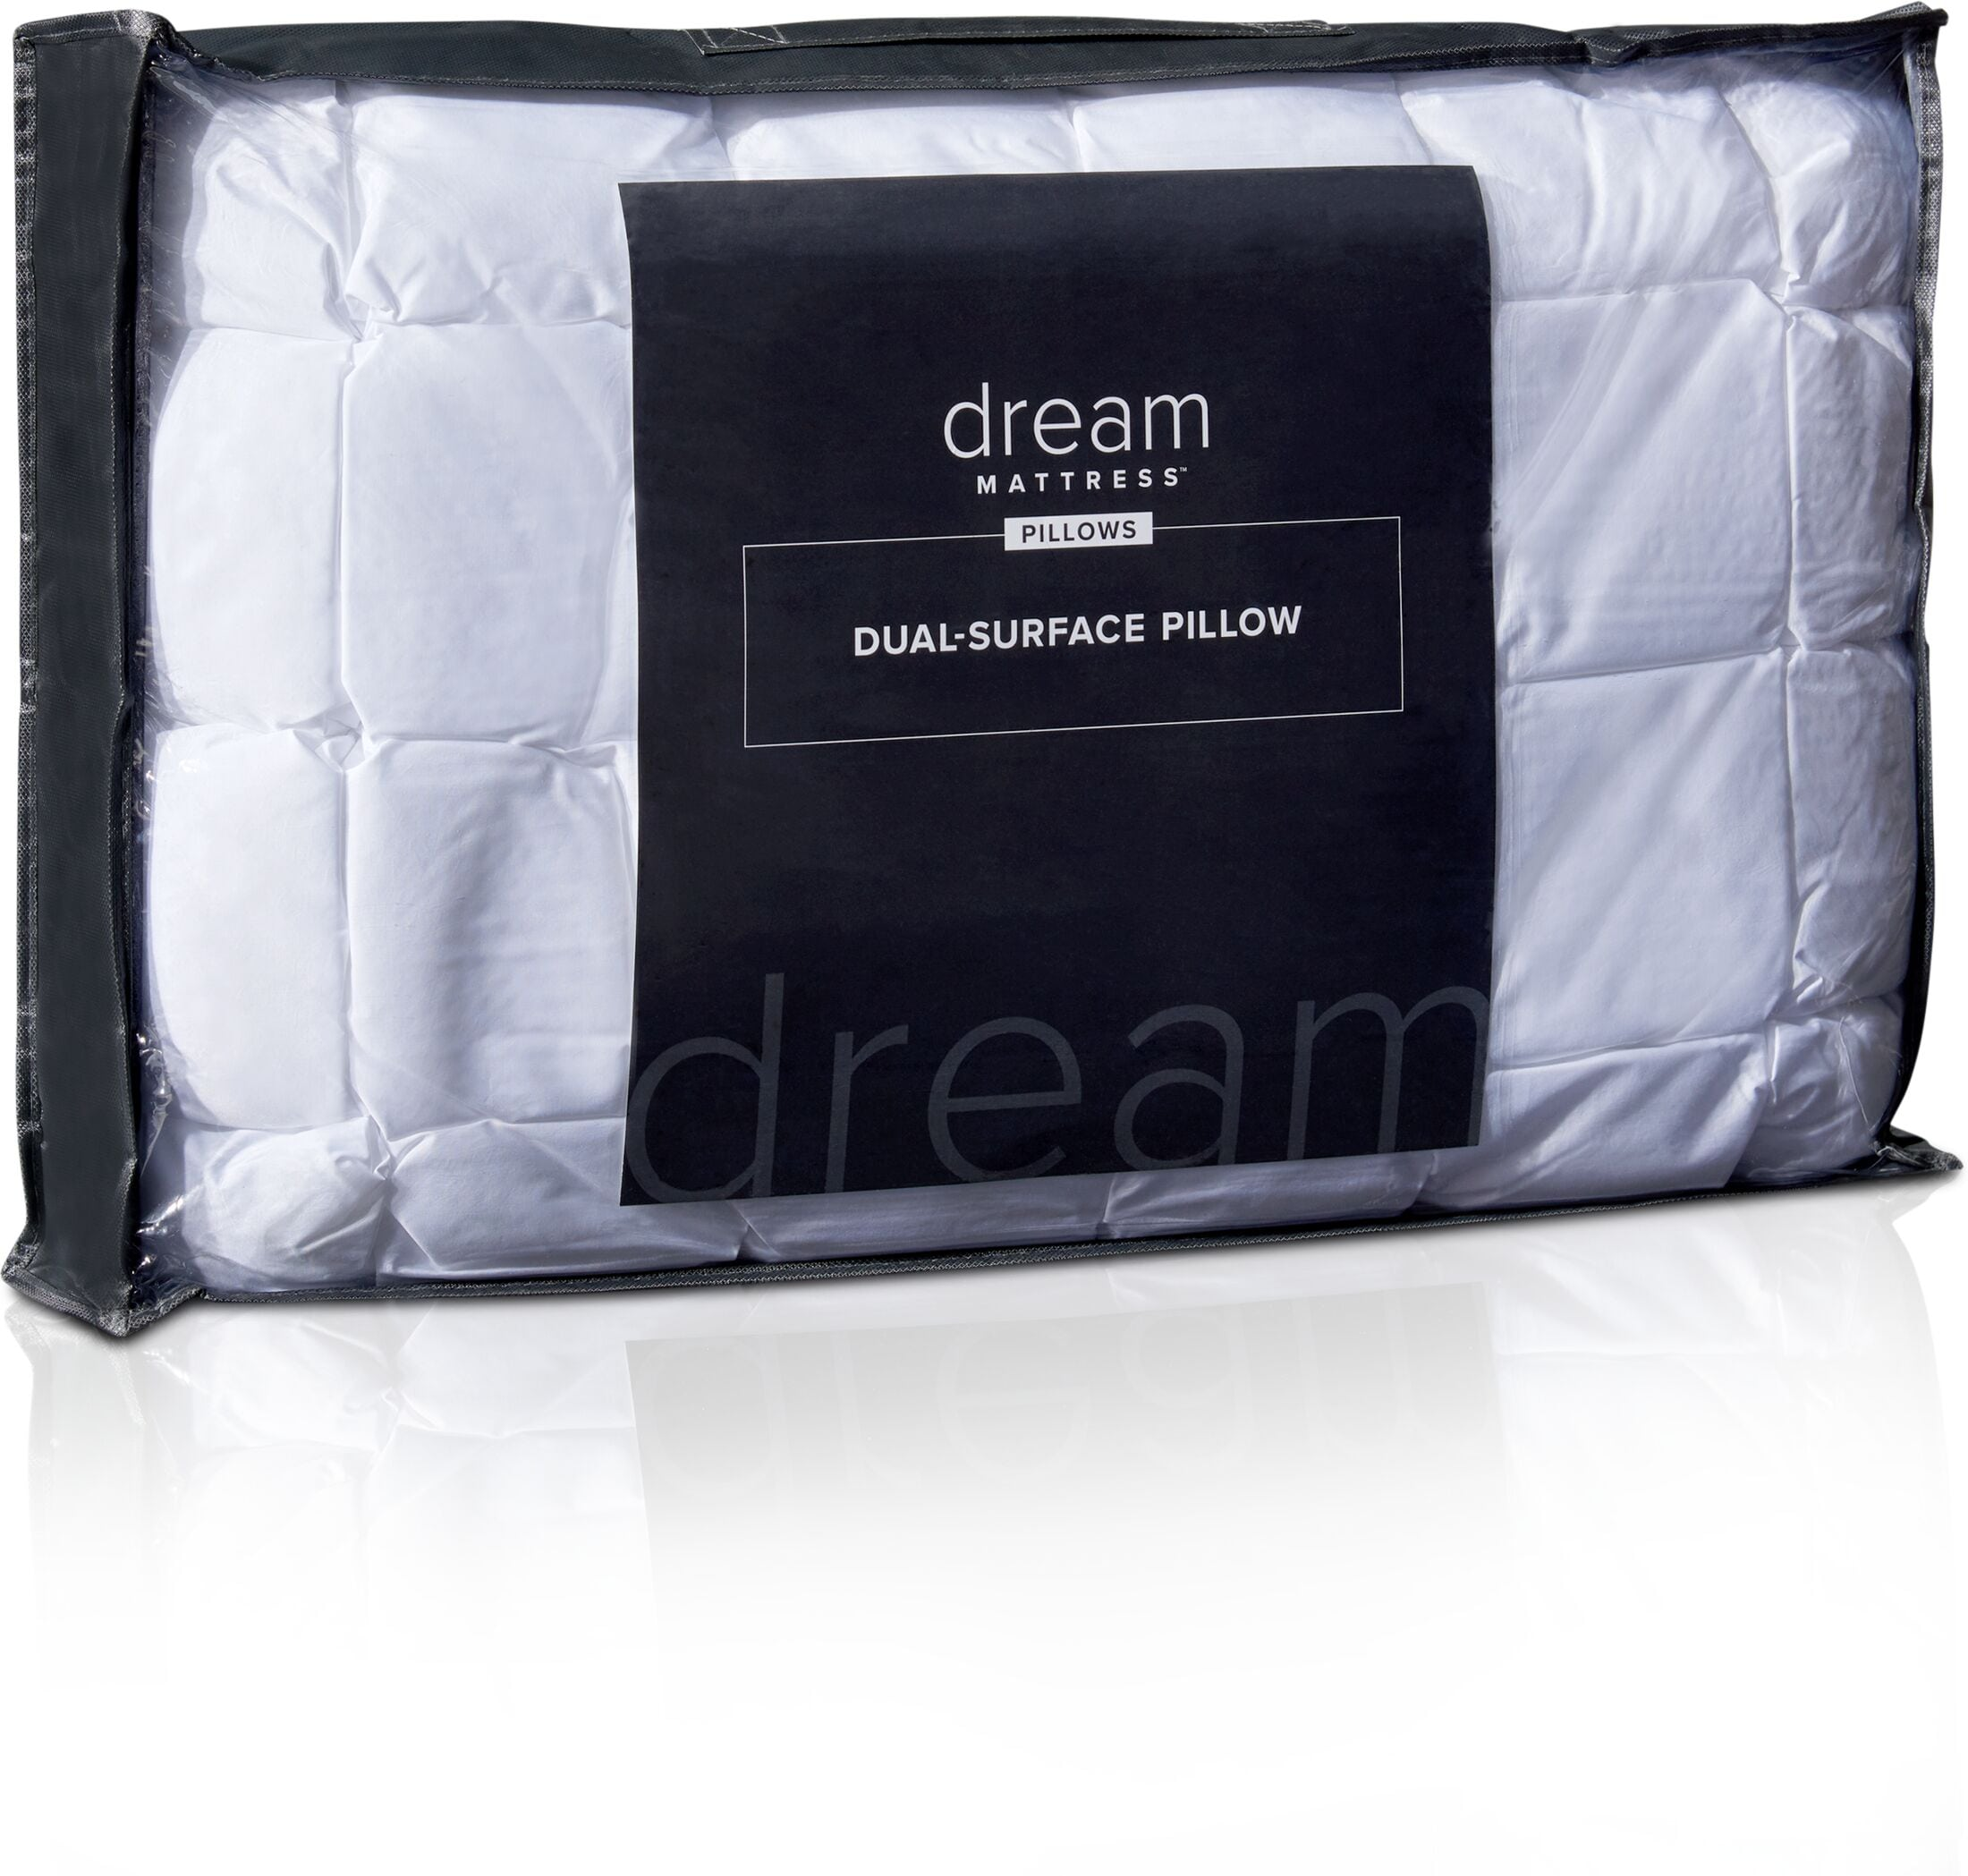 Mattresses and Bedding - Dream Dual-Surface Pillow